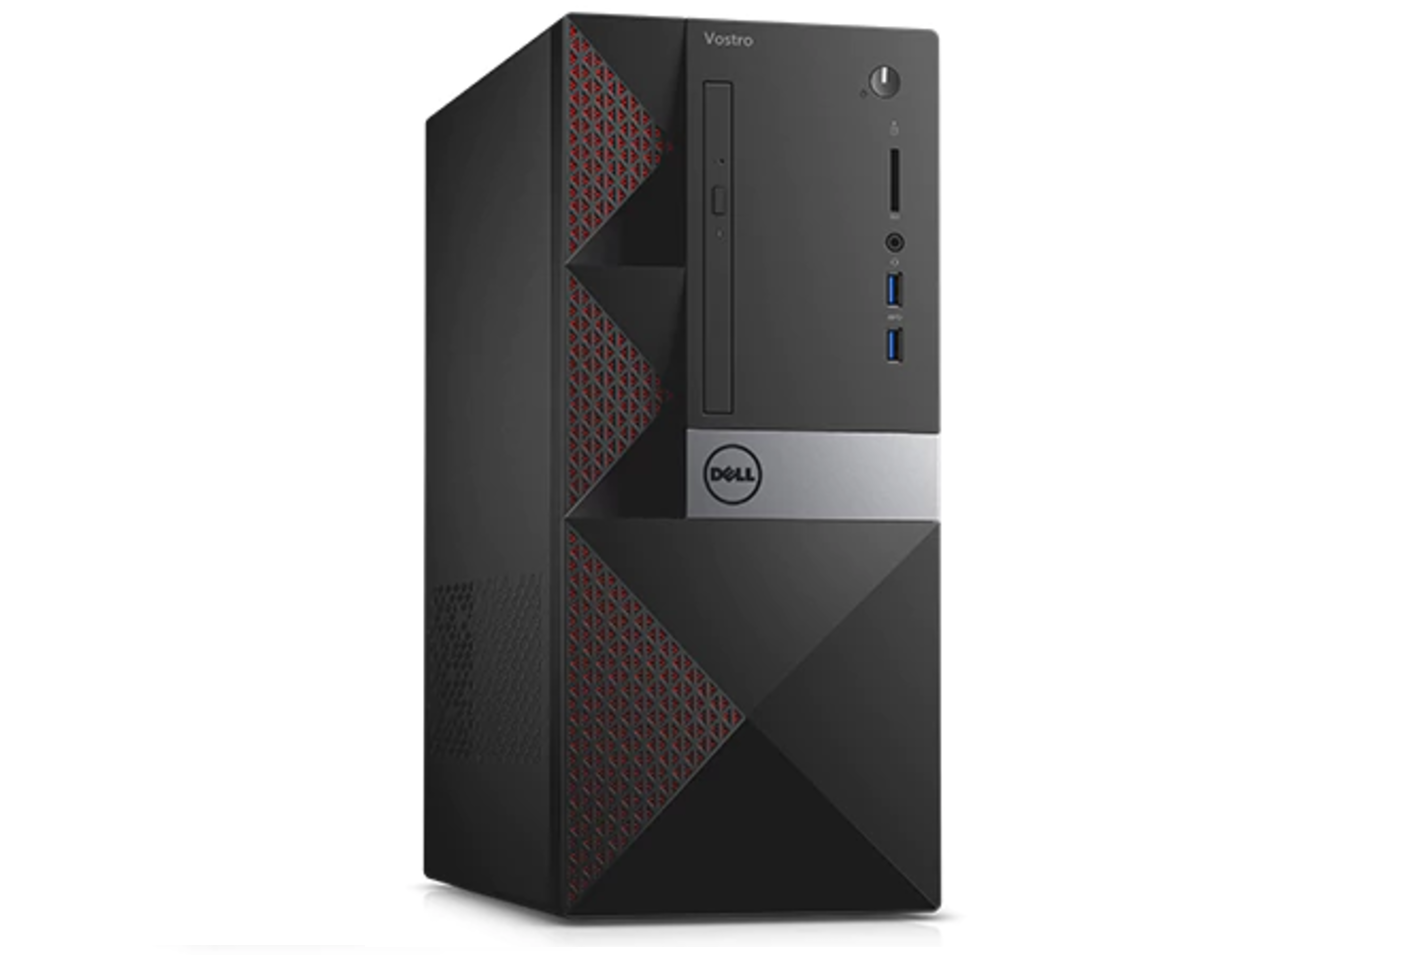 Phenomenal Review Dell Vostro 3000 Desktop Computer The Test Pit Home Remodeling Inspirations Basidirectenergyitoicom